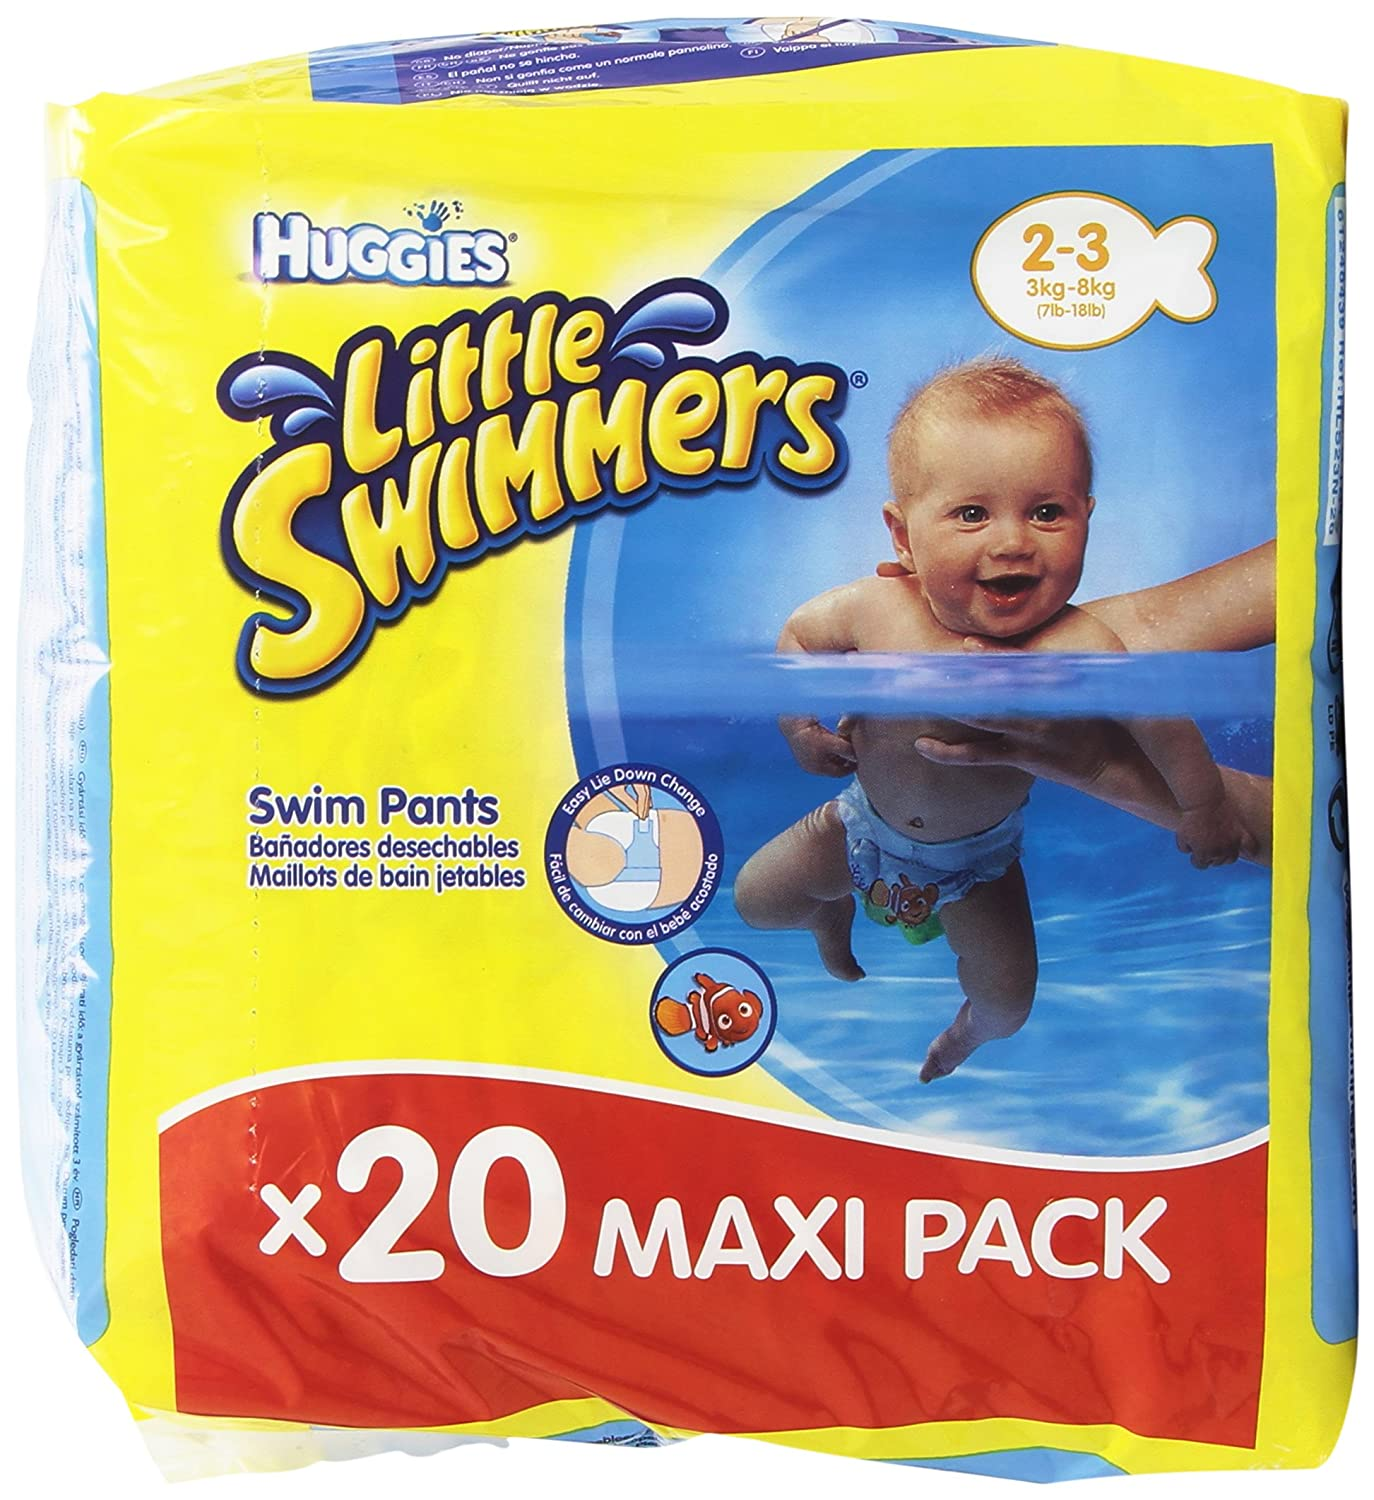 Huggies Little Swimmers- Bañadores Desechables, talla 2-3, 20 unidades: Amazon.es: Amazon Pantry